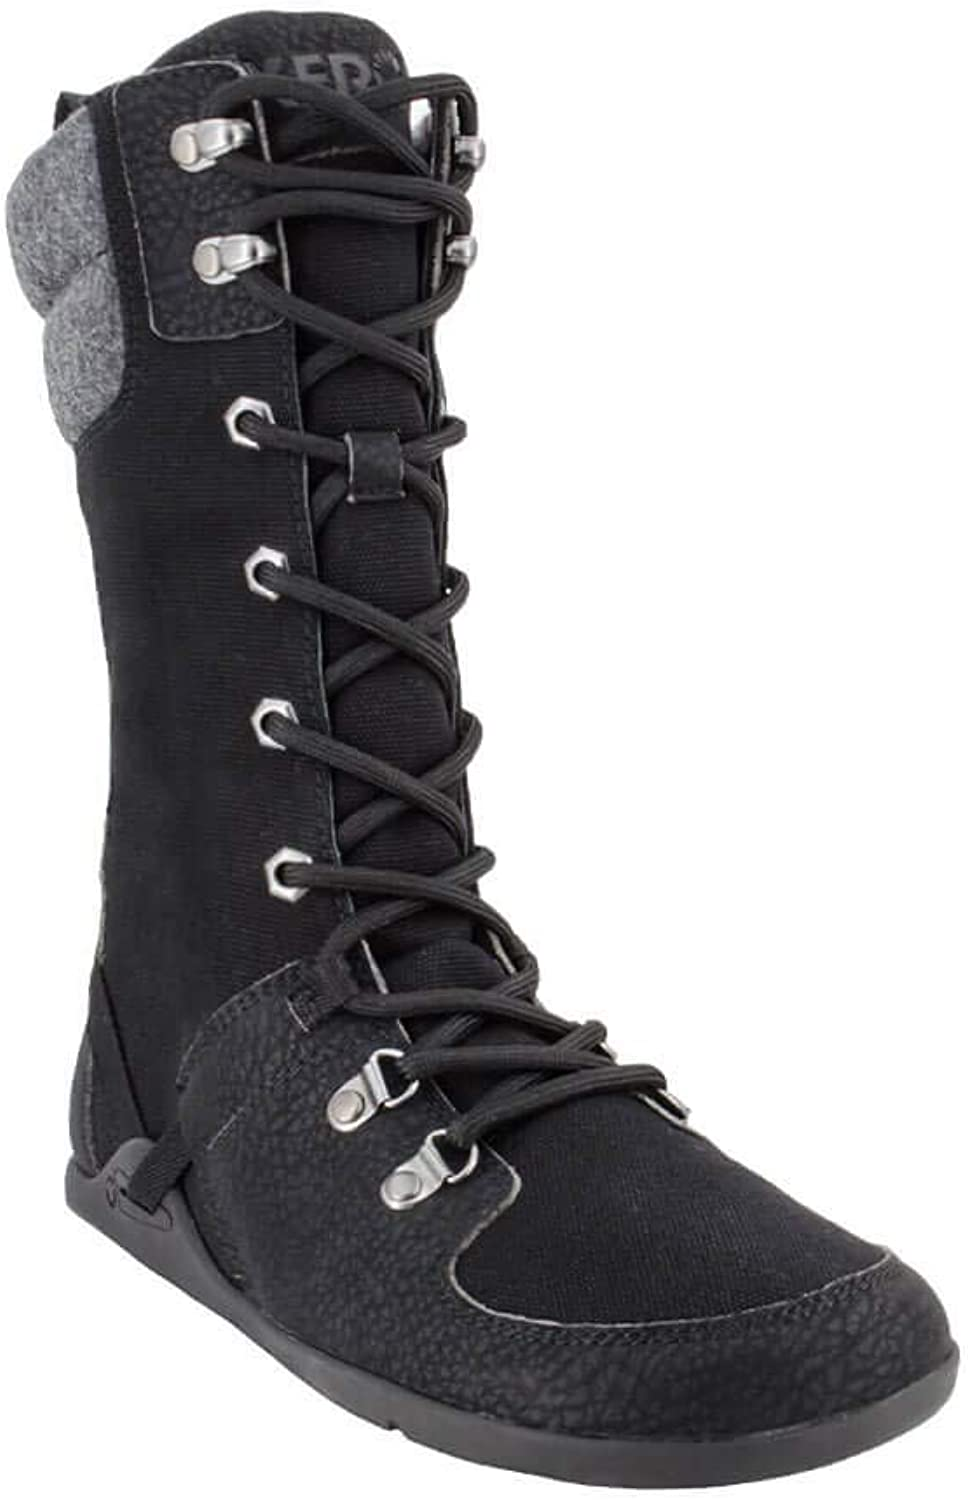 Xero Shoes Women's Mika Fashion Winter Boot - Water-Repellant, Cold Weather Boot